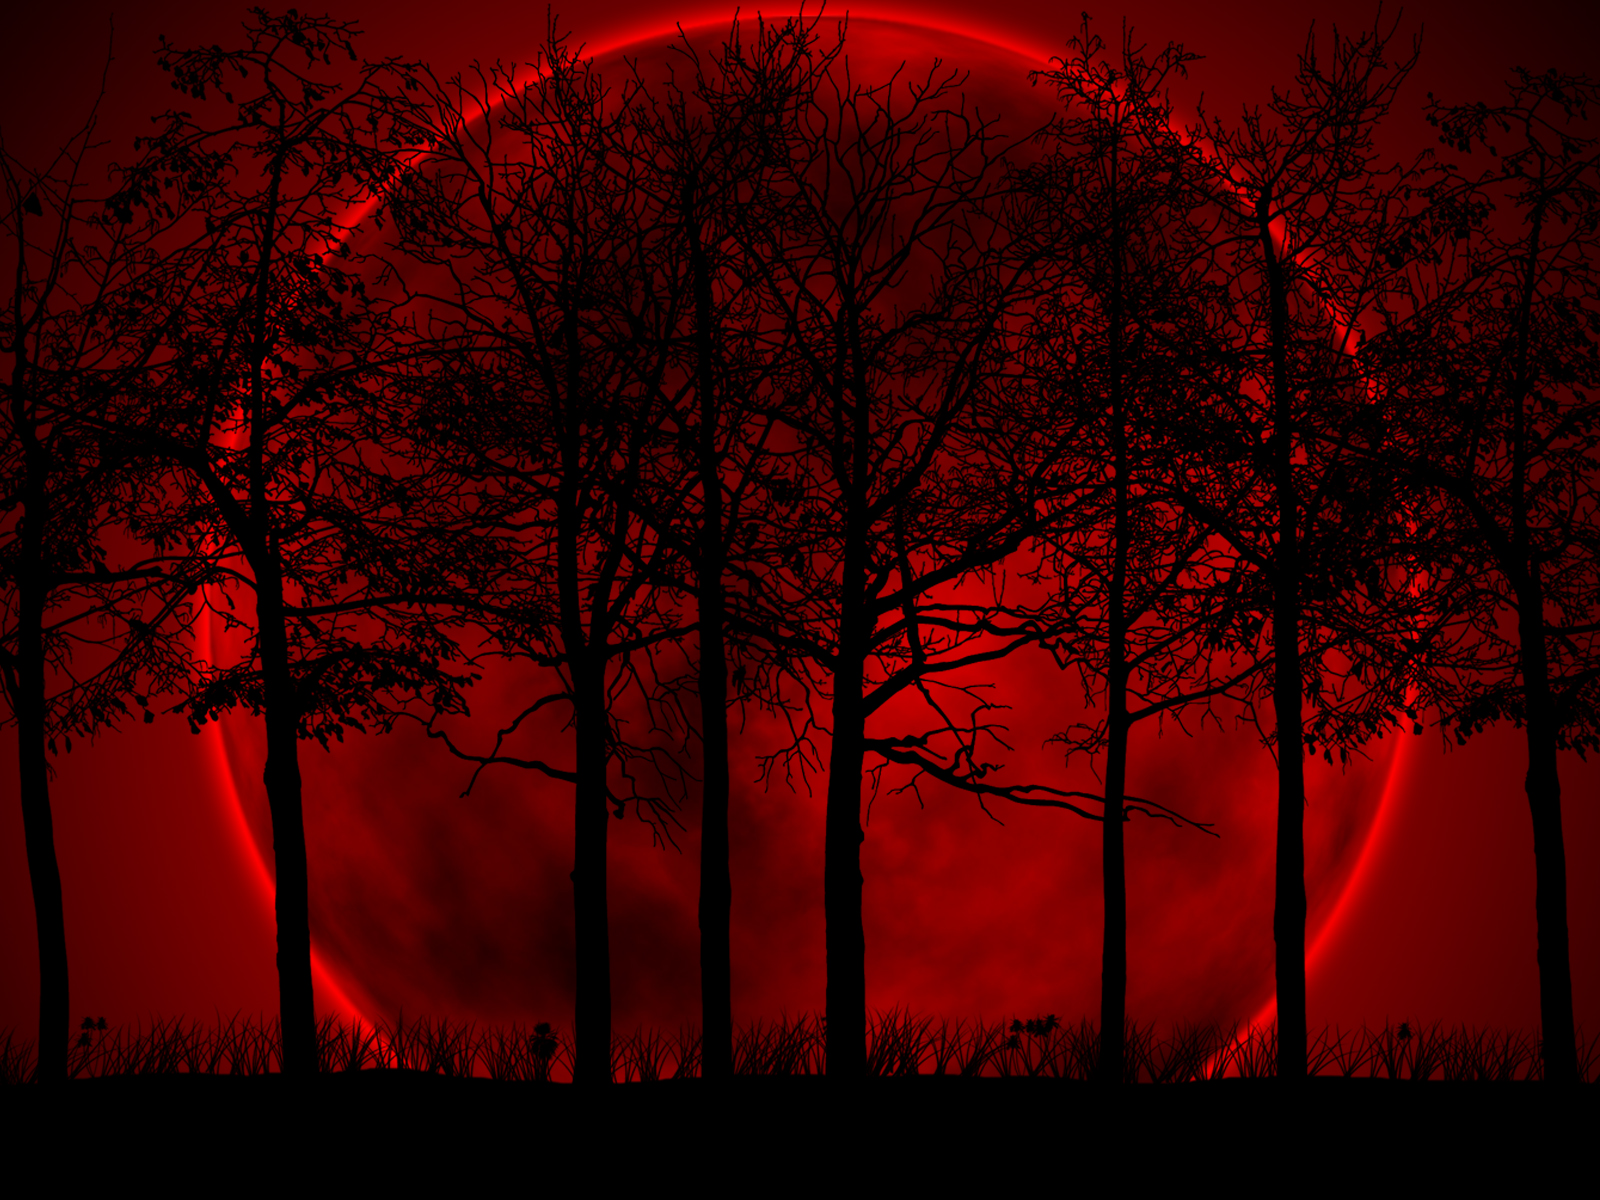 Wallpaper 34 Moon forest Red and Black Wallpapers 1600x1200